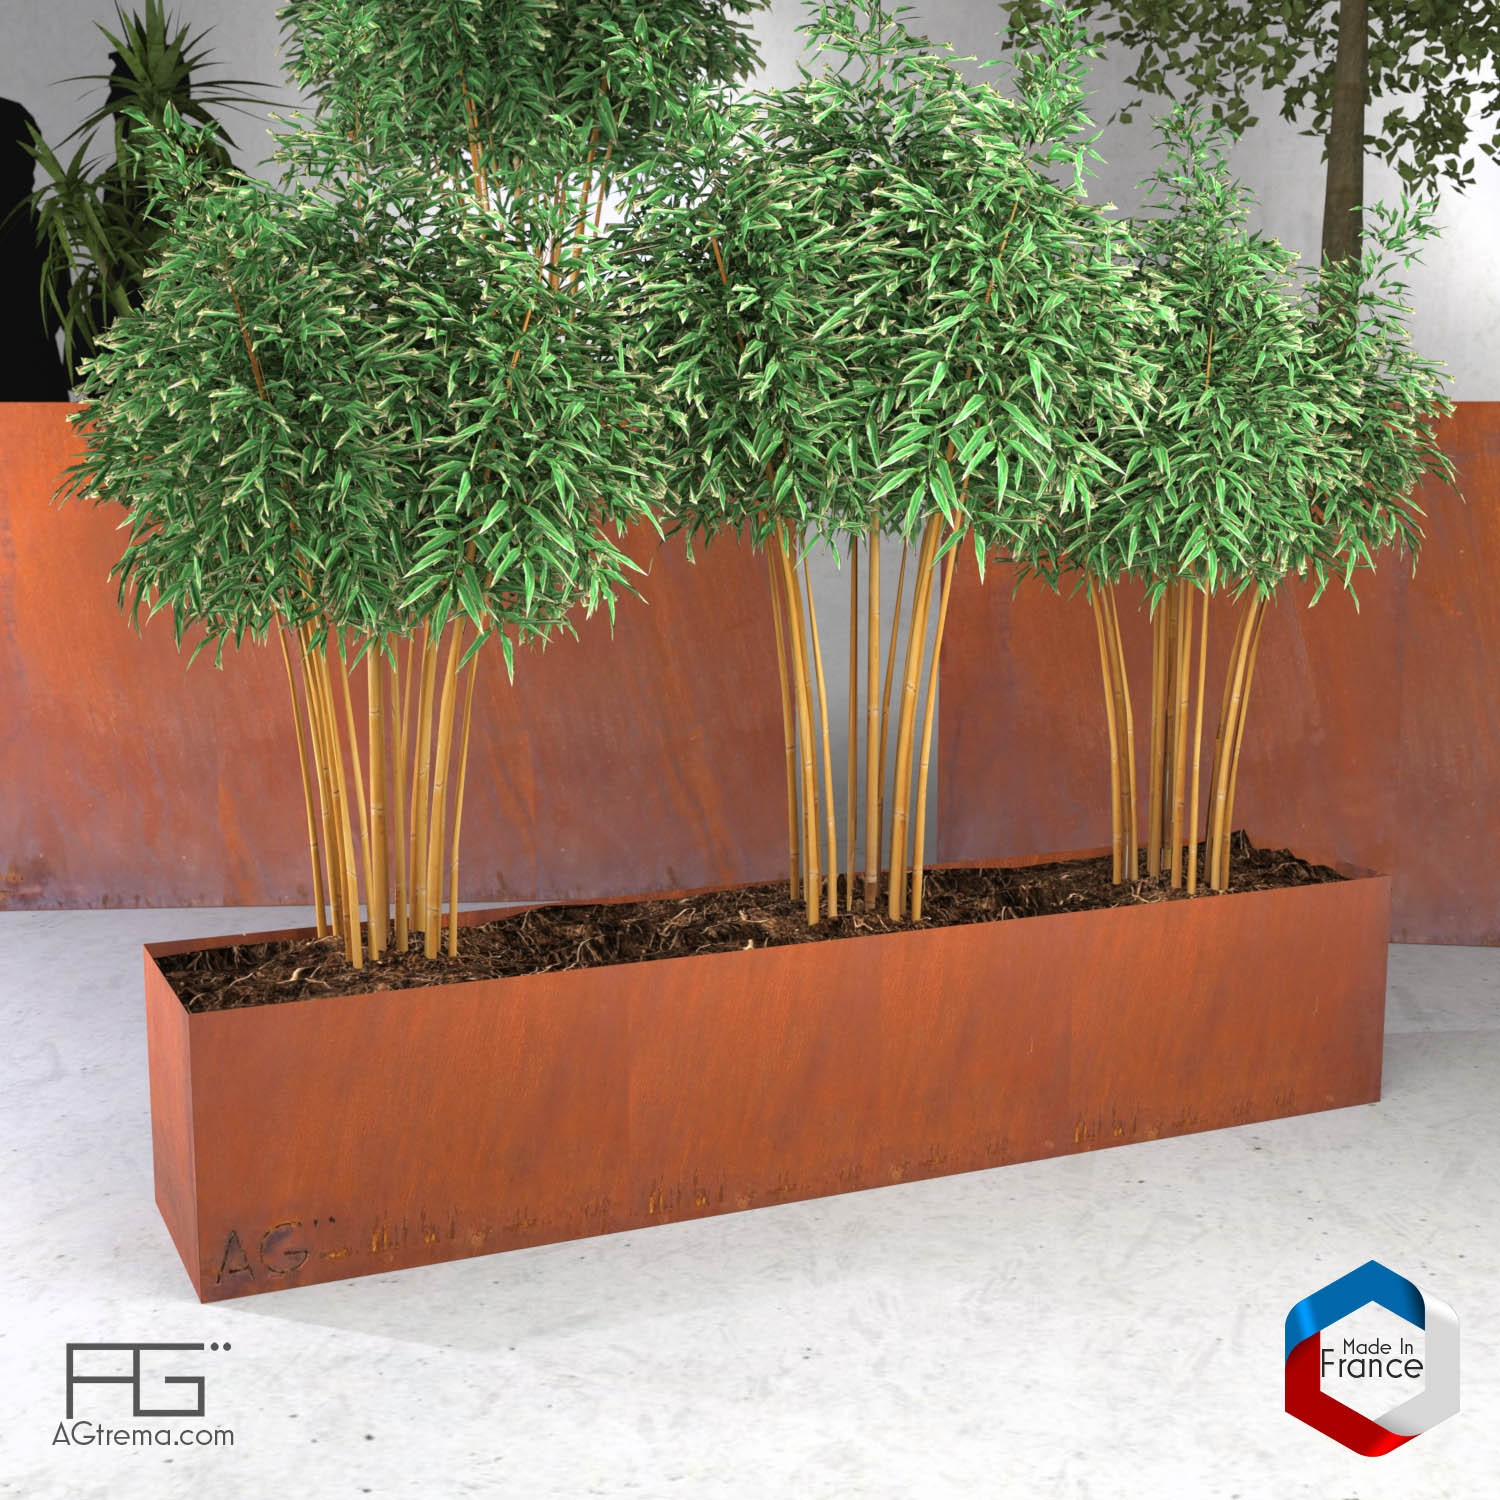 Bac plantes et jardini re corten agtrema for Plantes a commander